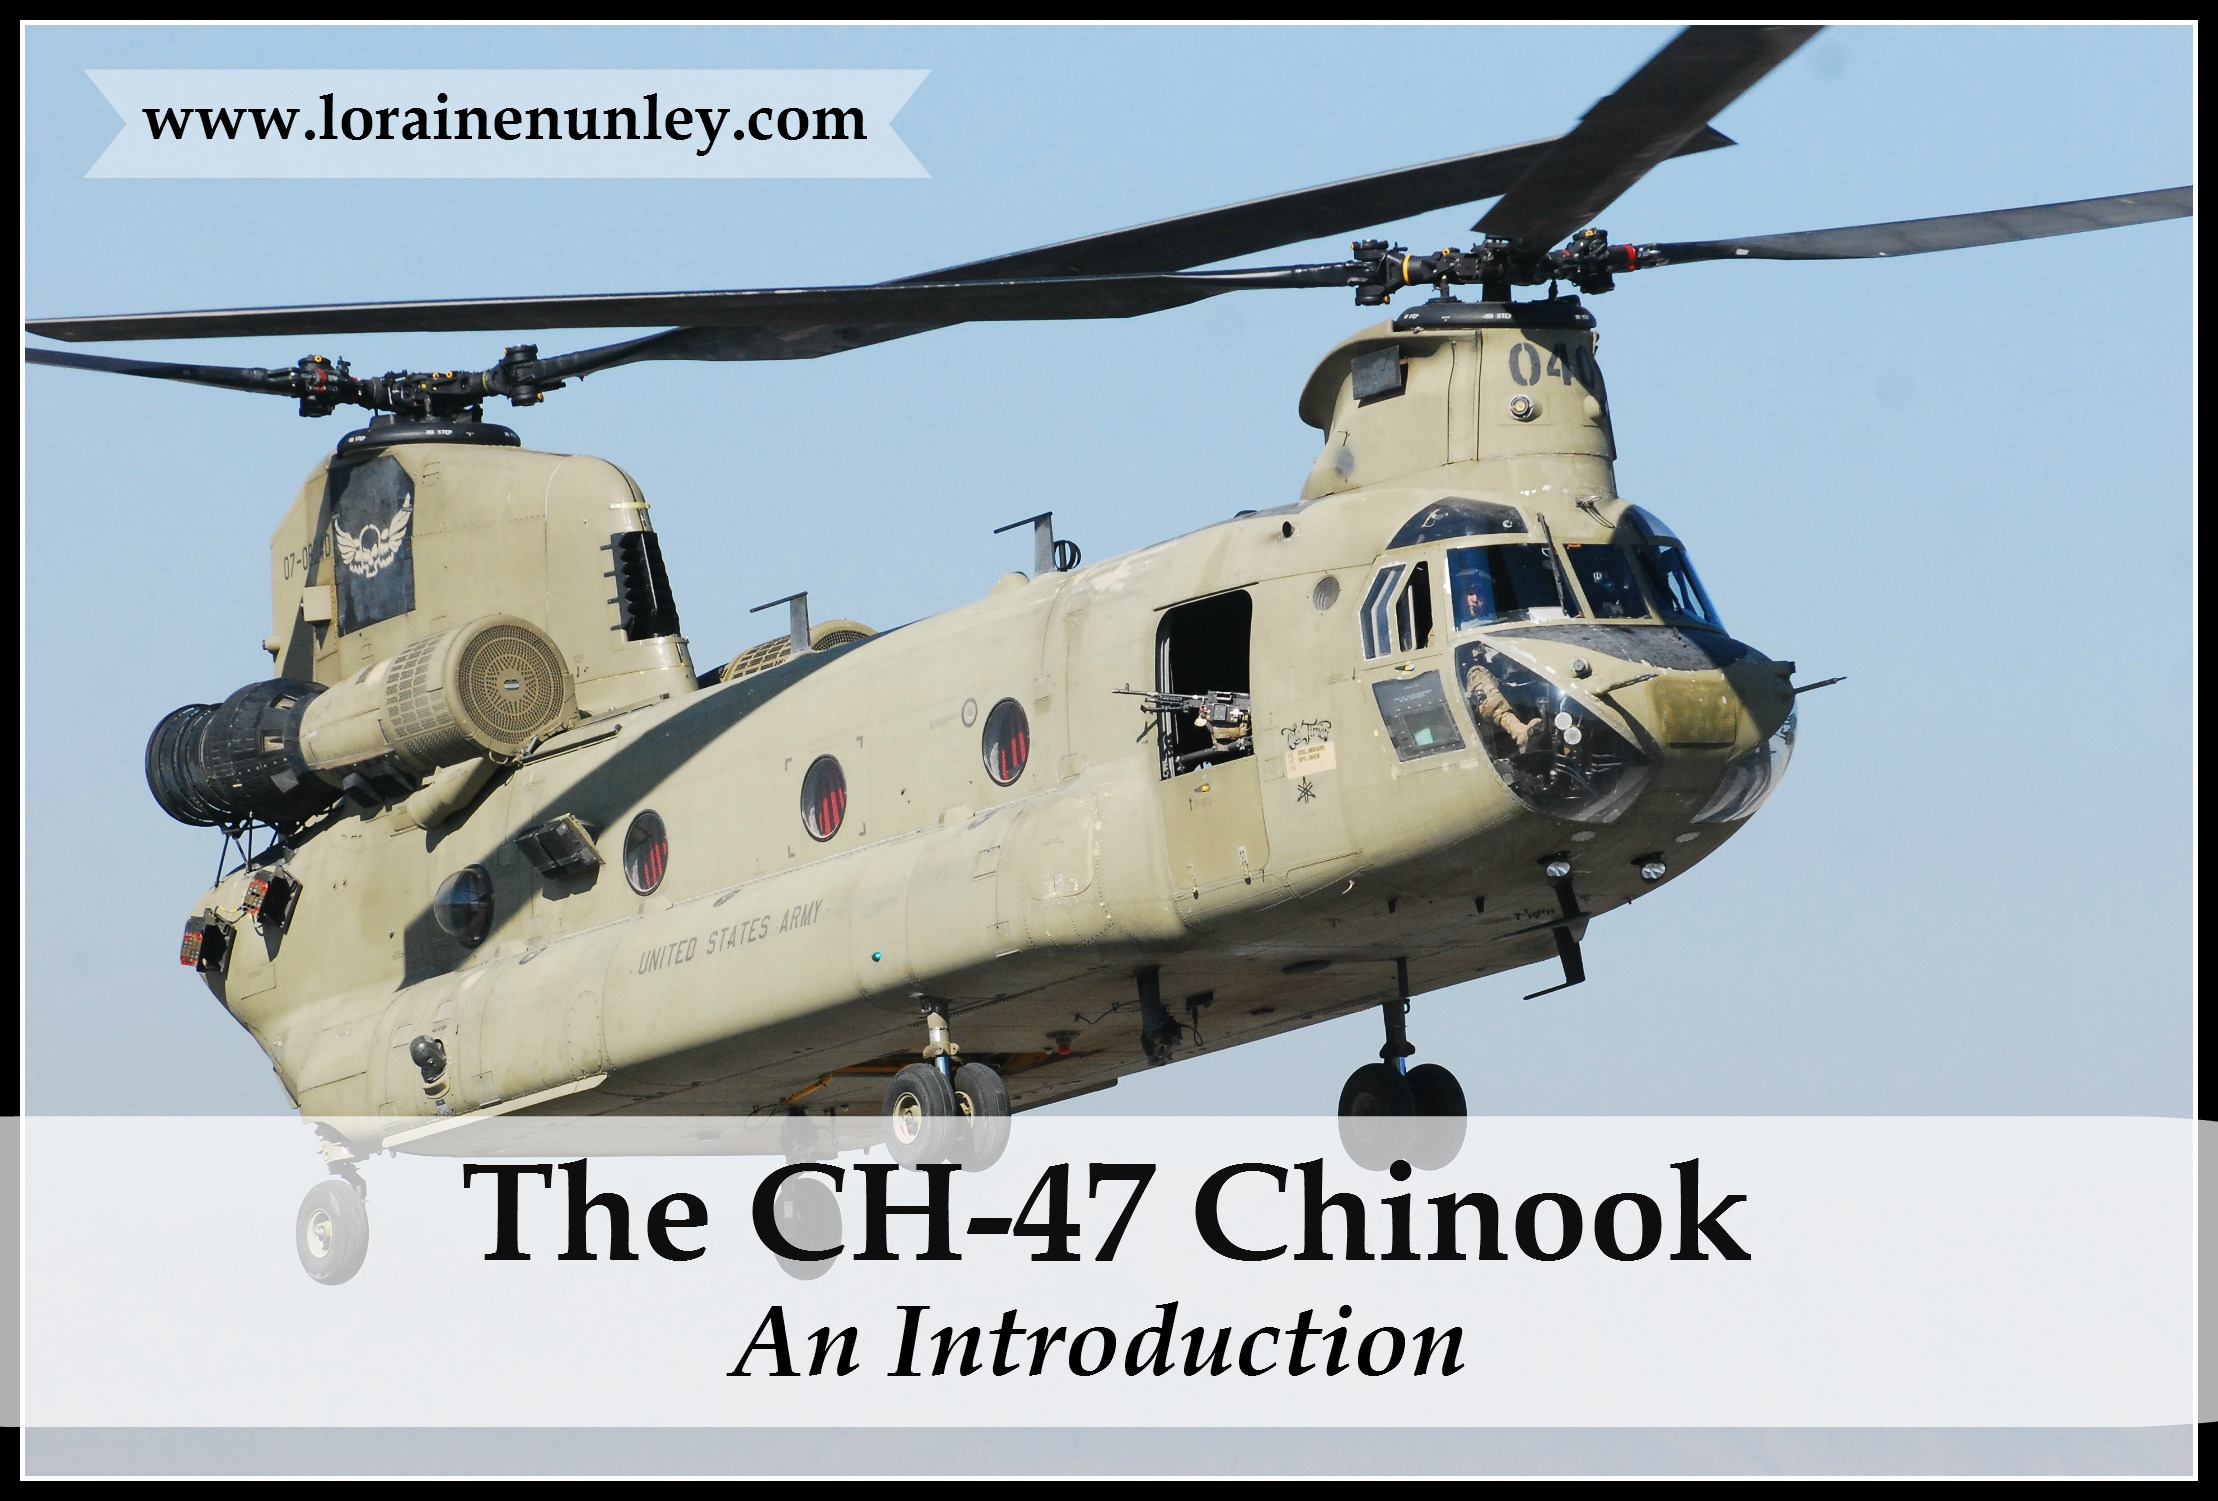 CH-47 Chinook: An Introduction